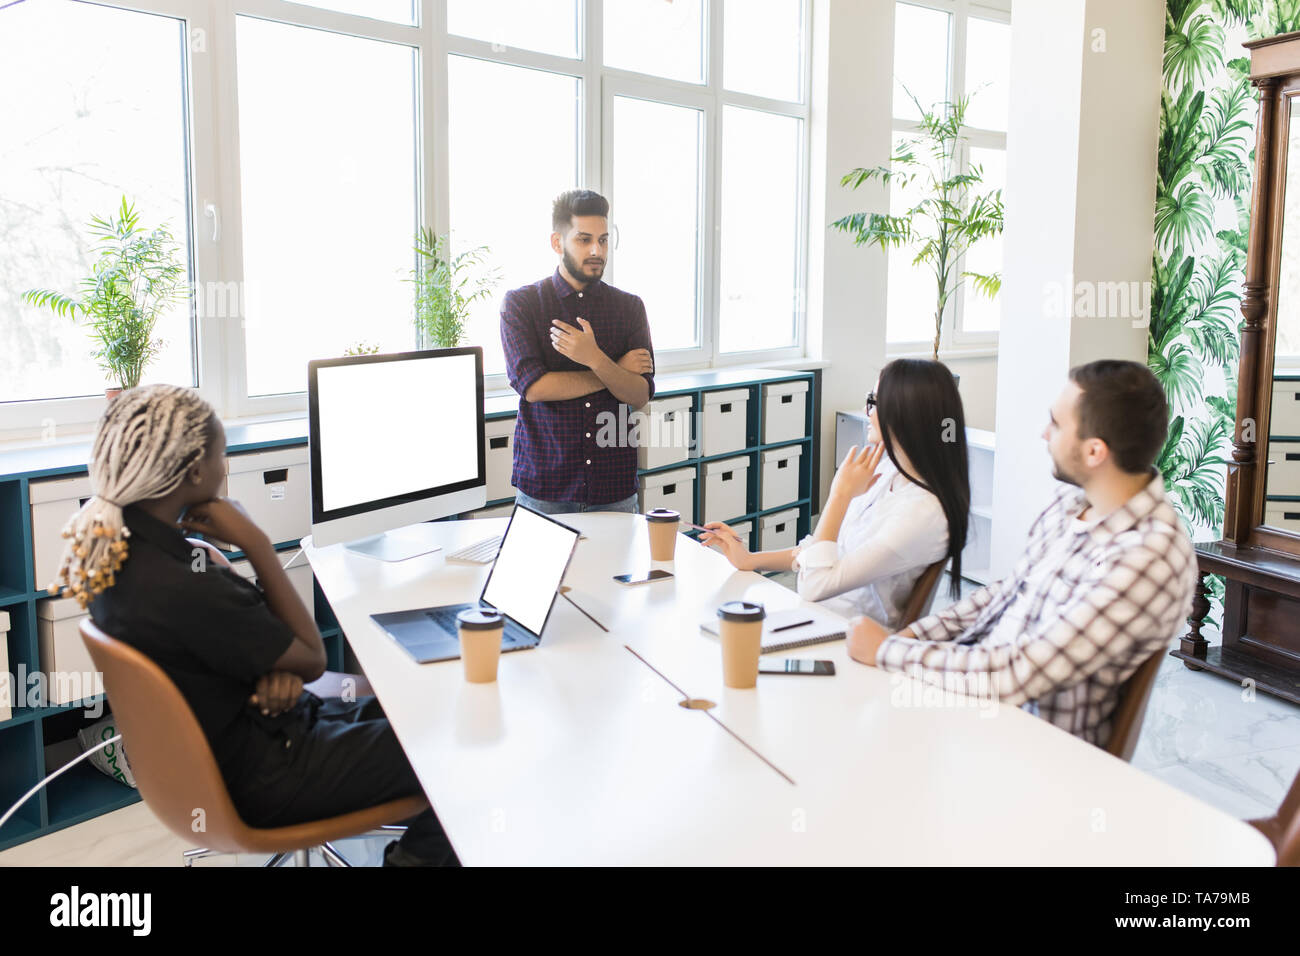 Brainstorming in a boardroom of creative office . Young creative people sitting at the table and discussing new projects. - Stock Image